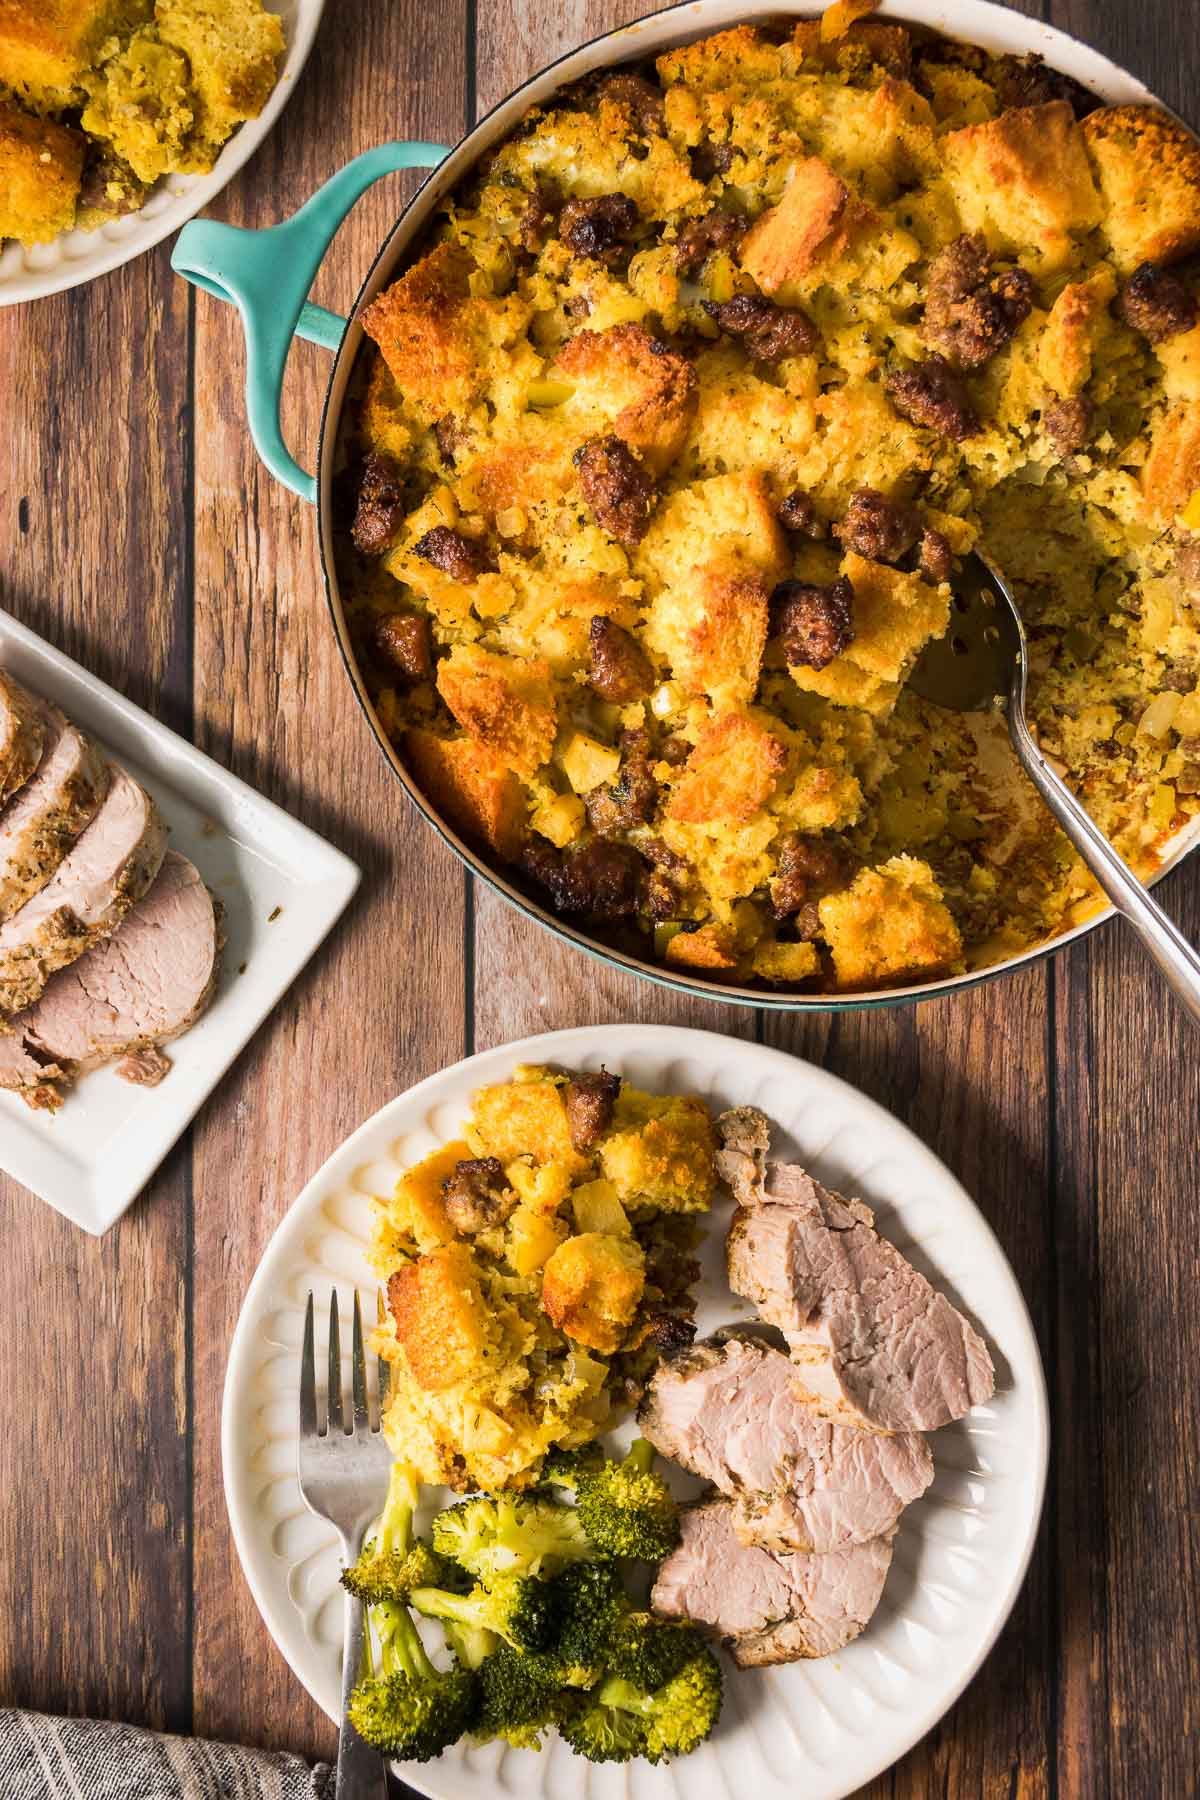 Plate with a serving of gluten free cornbread dressing, sliced pork, and broccoli.